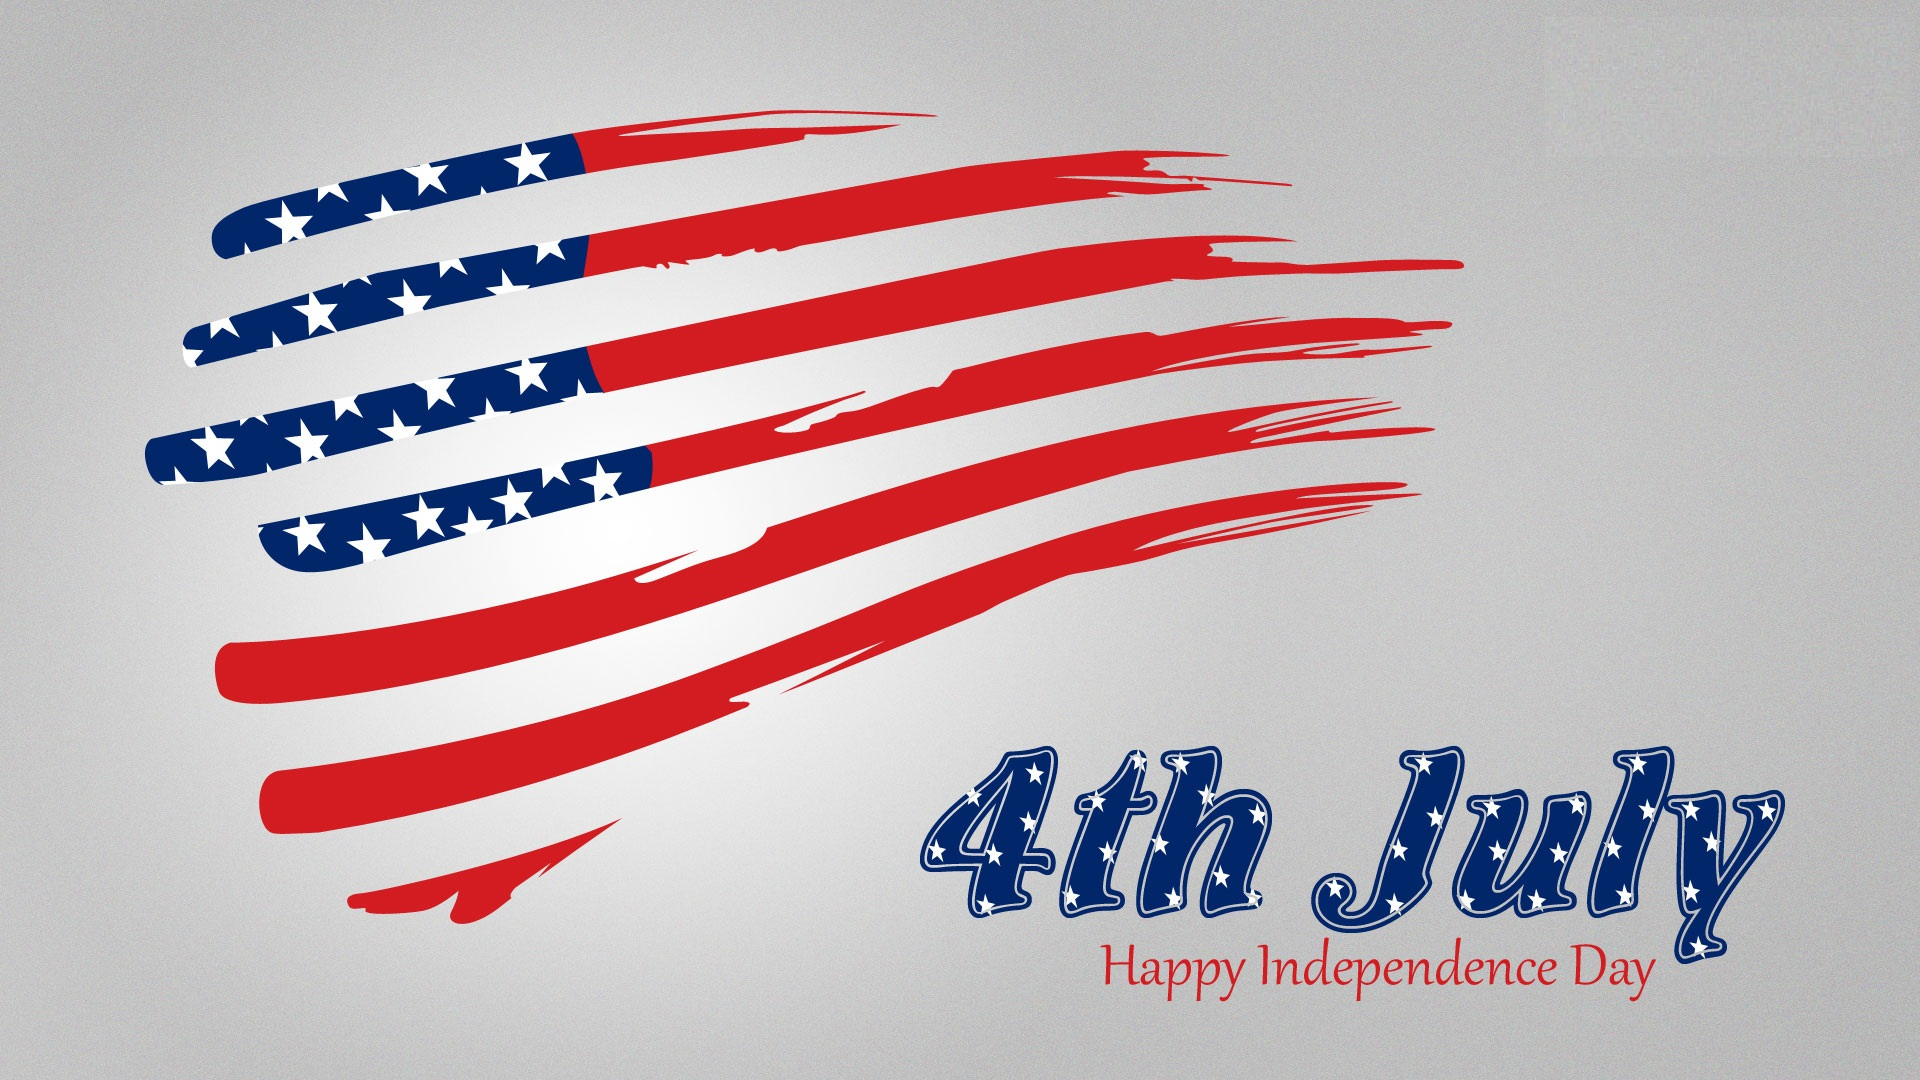 4th July Independence Day Pics For Facebook